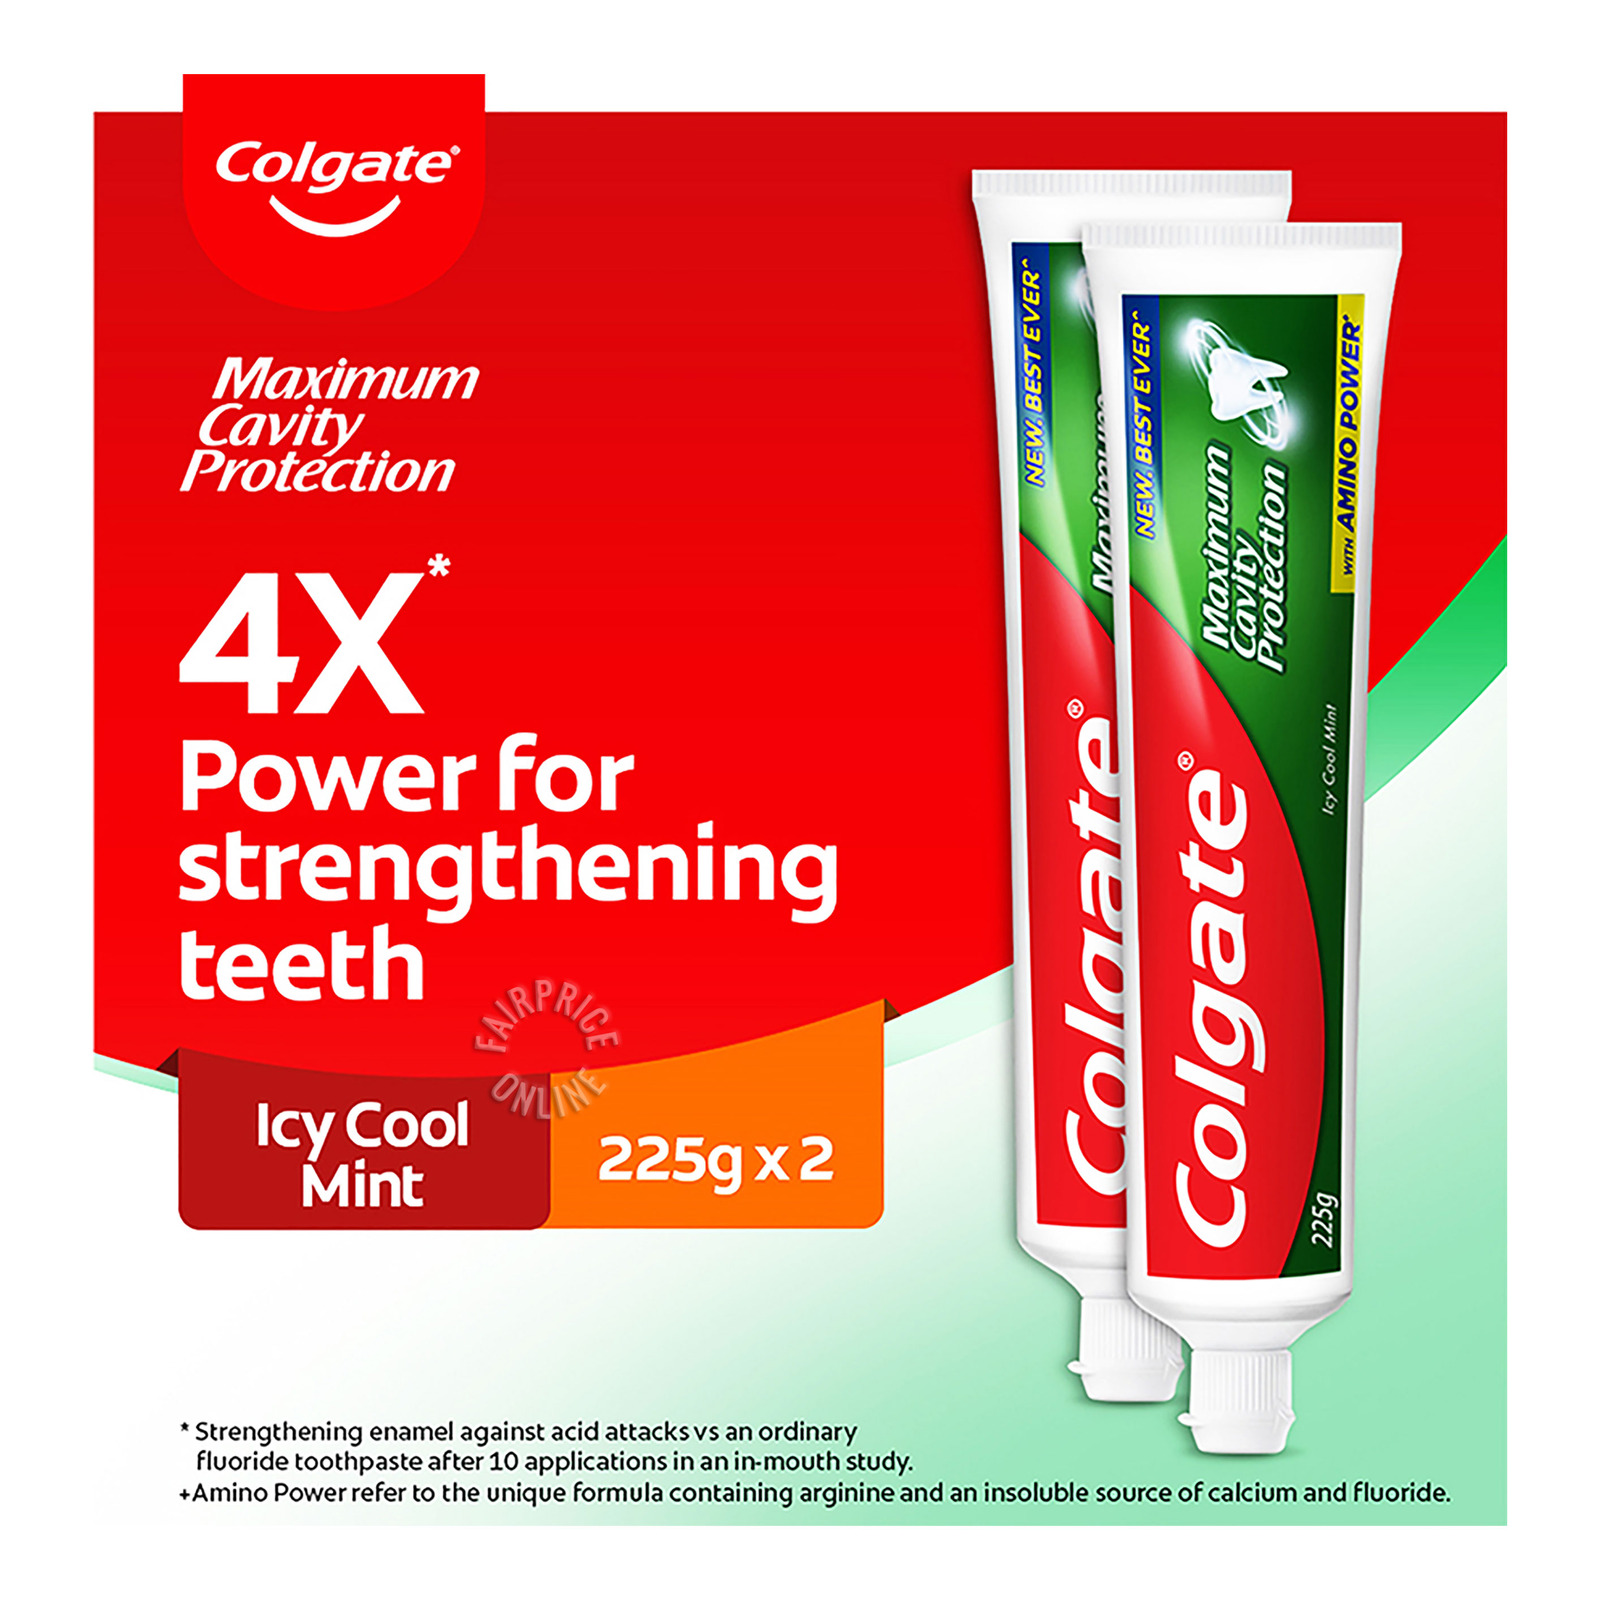 Colgate Maximum Cavity Protection Icy Cool Mint ToothpasteValuepack175g x 3